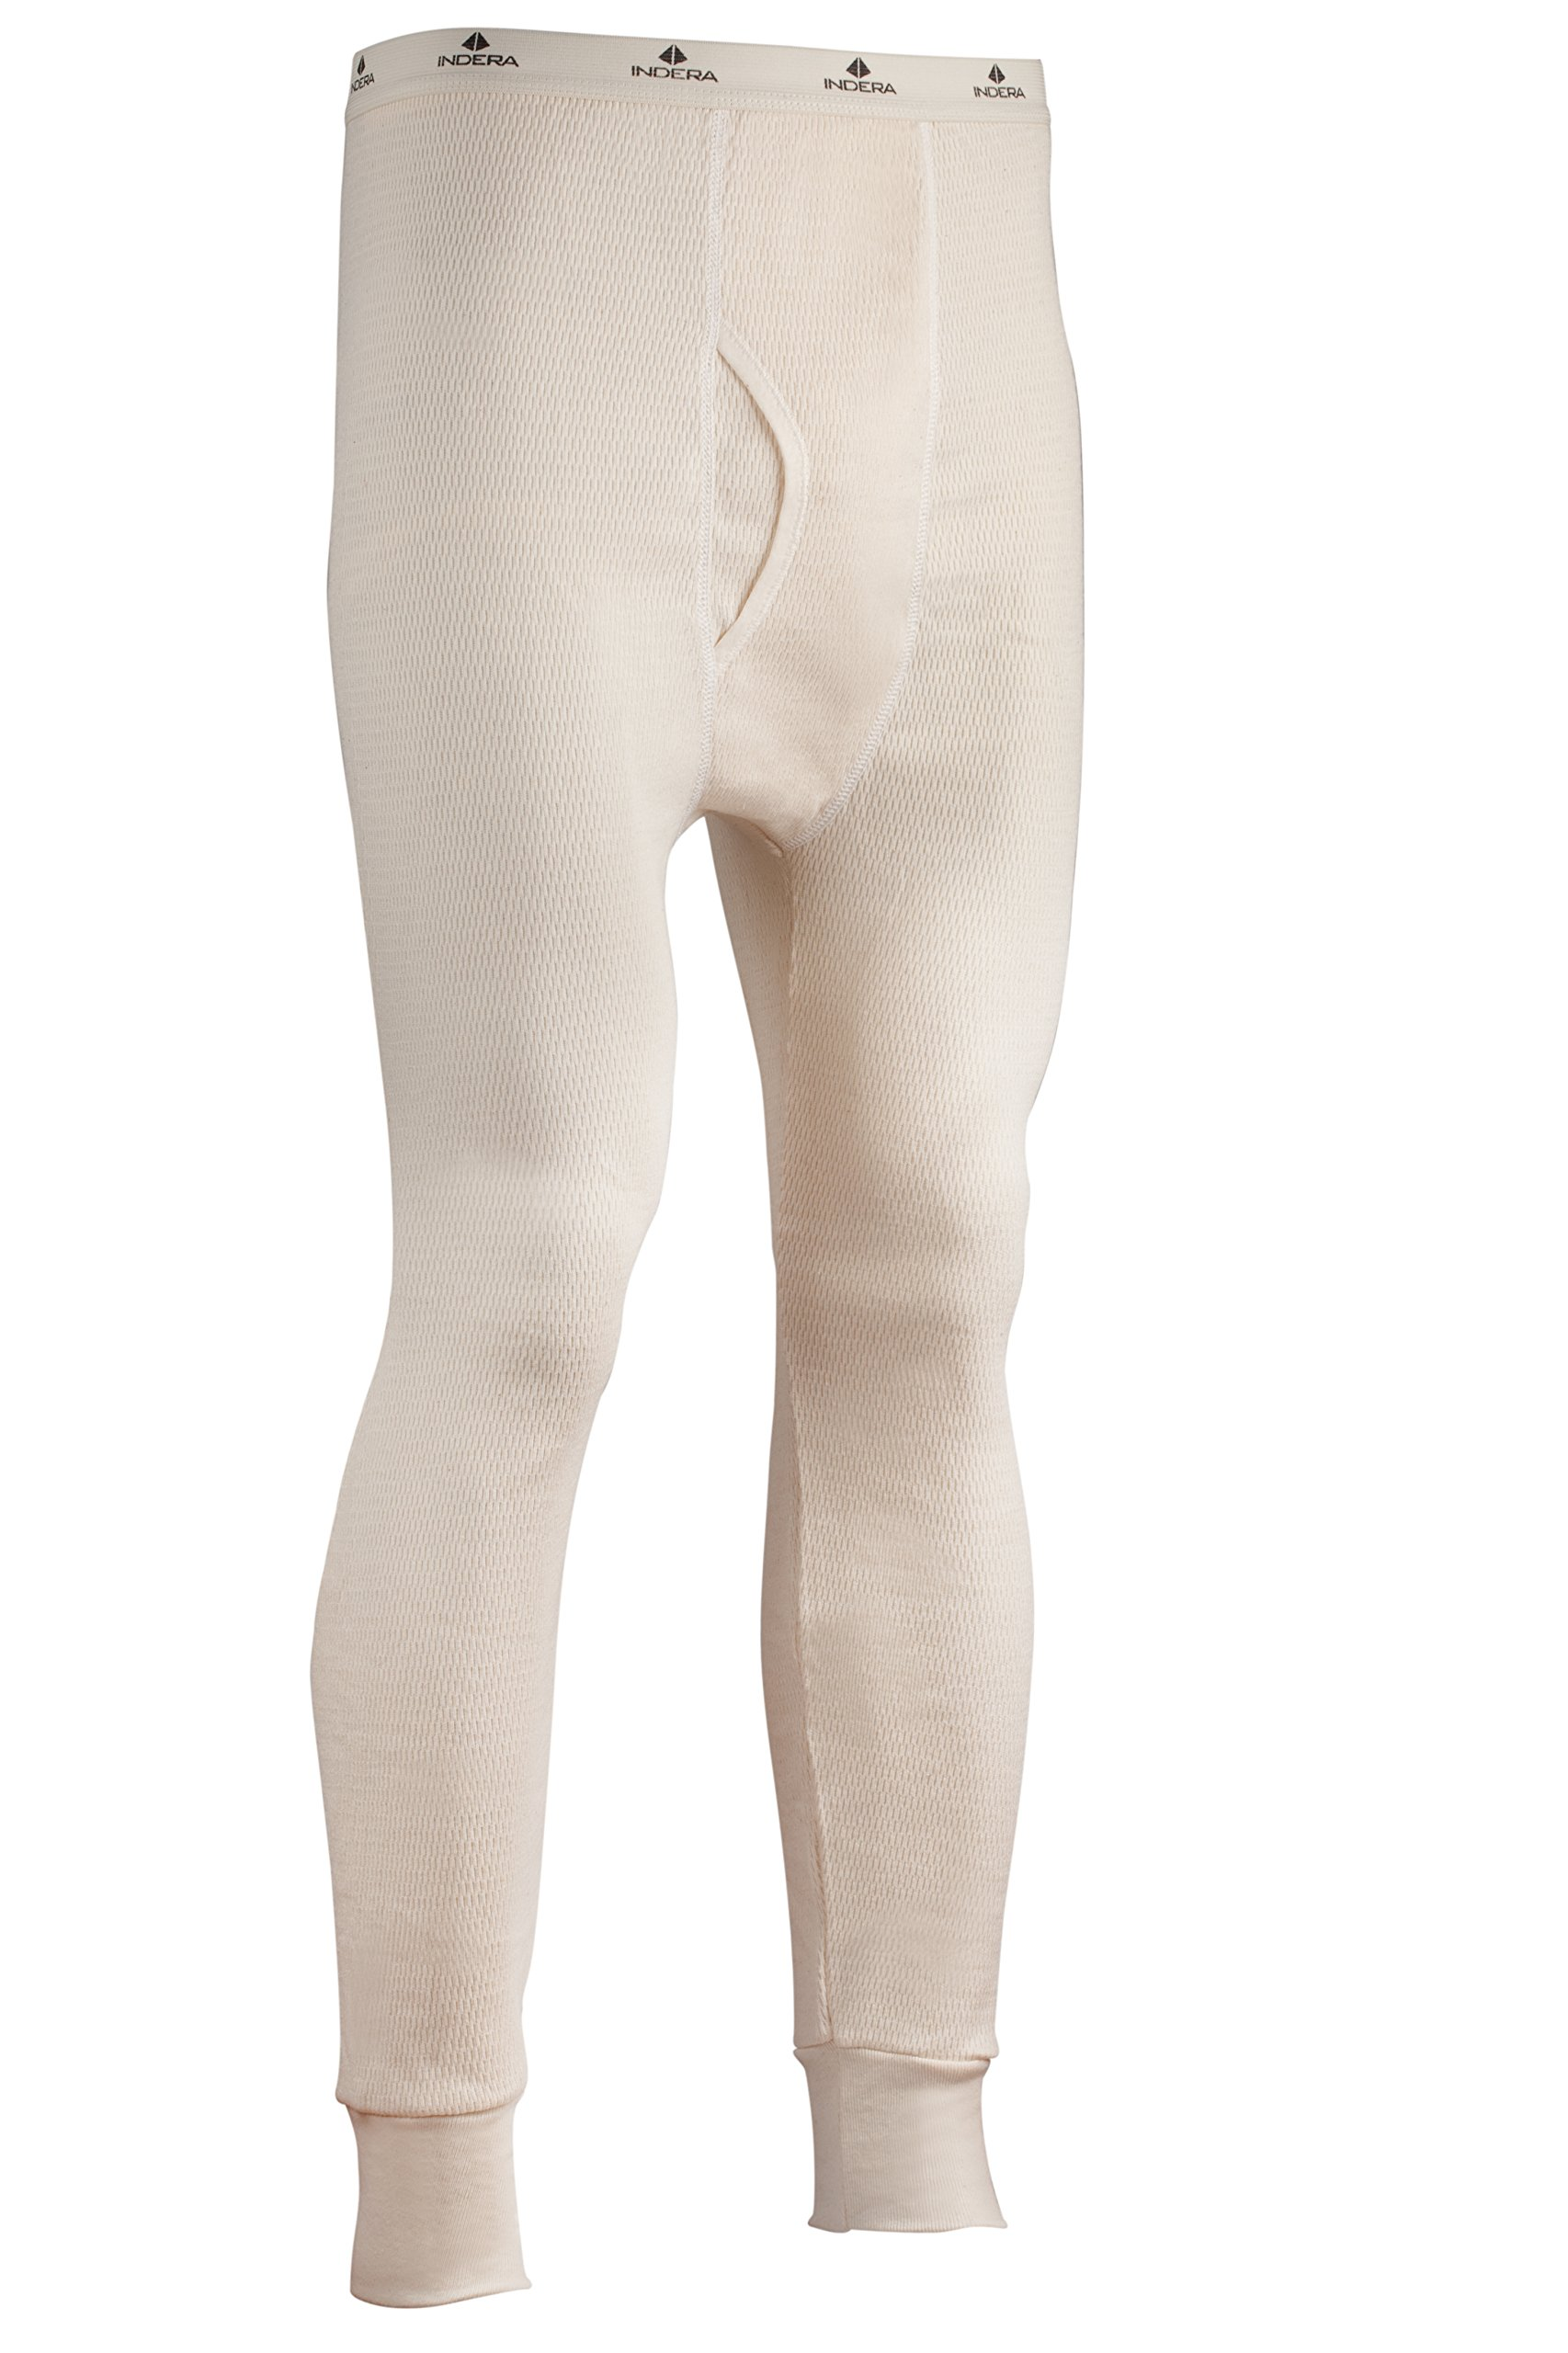 Indera Men's Expedition Weight Cotton Raschel Knit Thermal Underwear Pant, Natural, Large by Indera